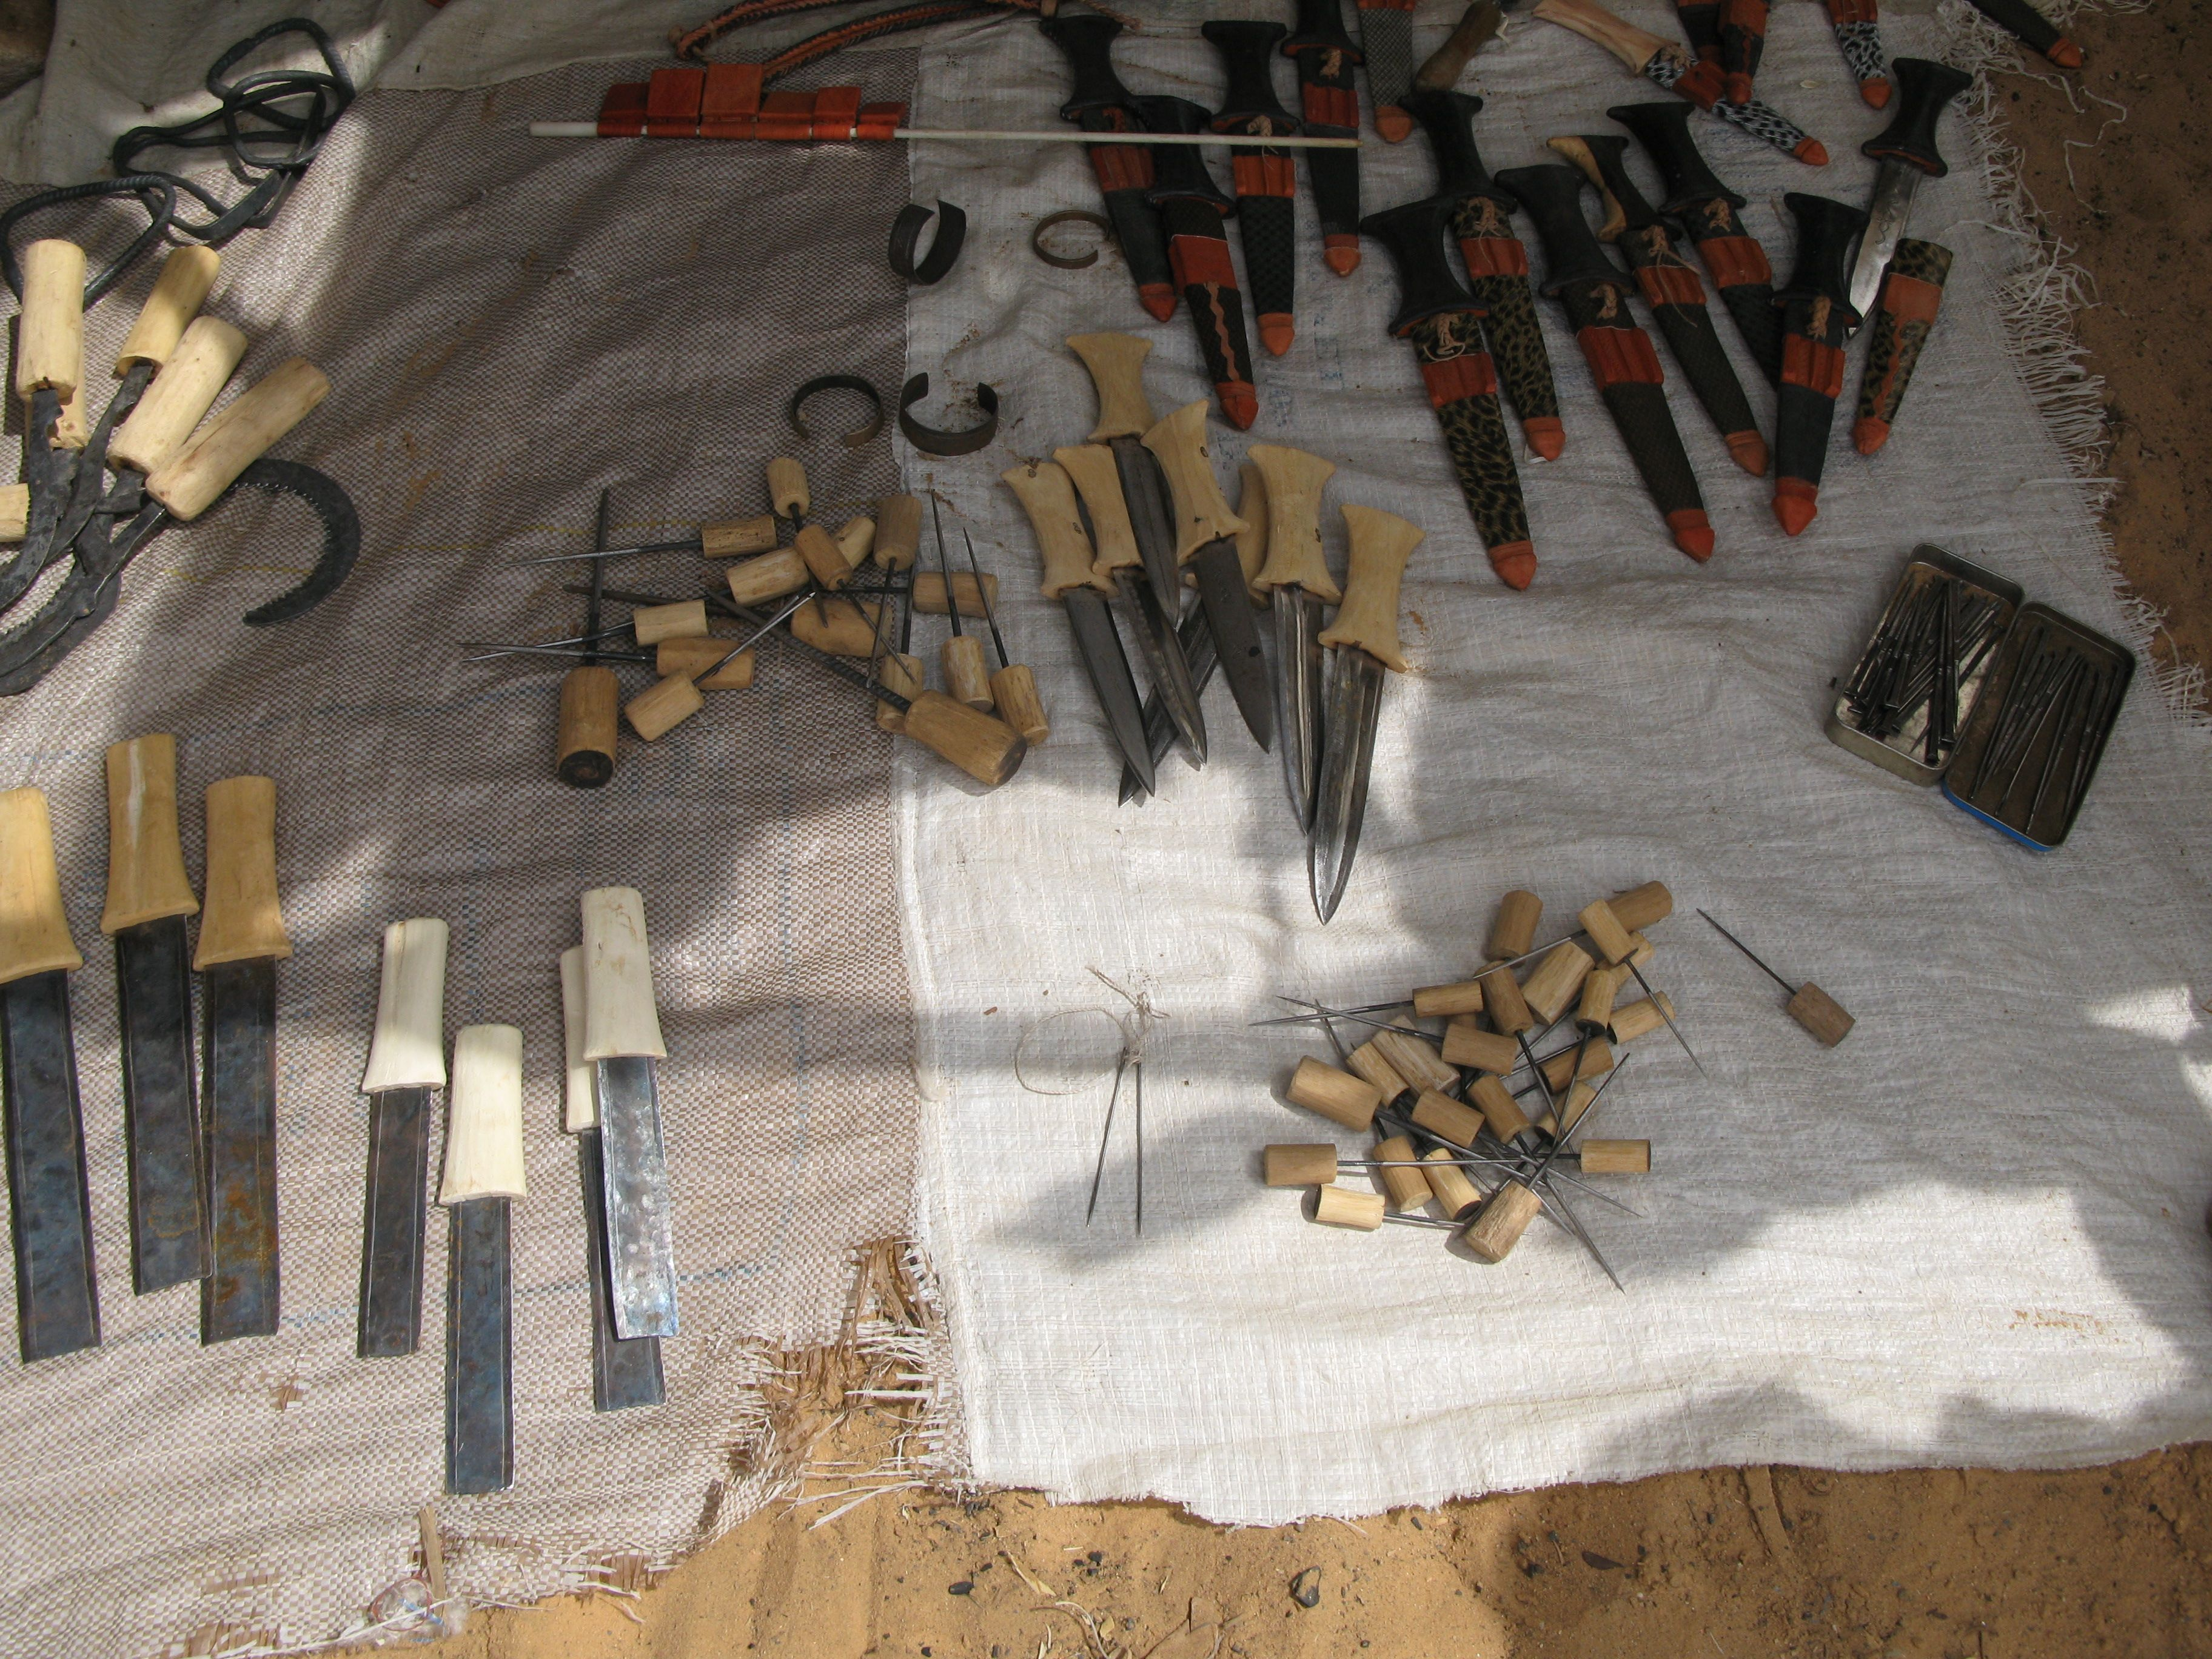 Knives and tools from from the Oure Cassoni refugee camp